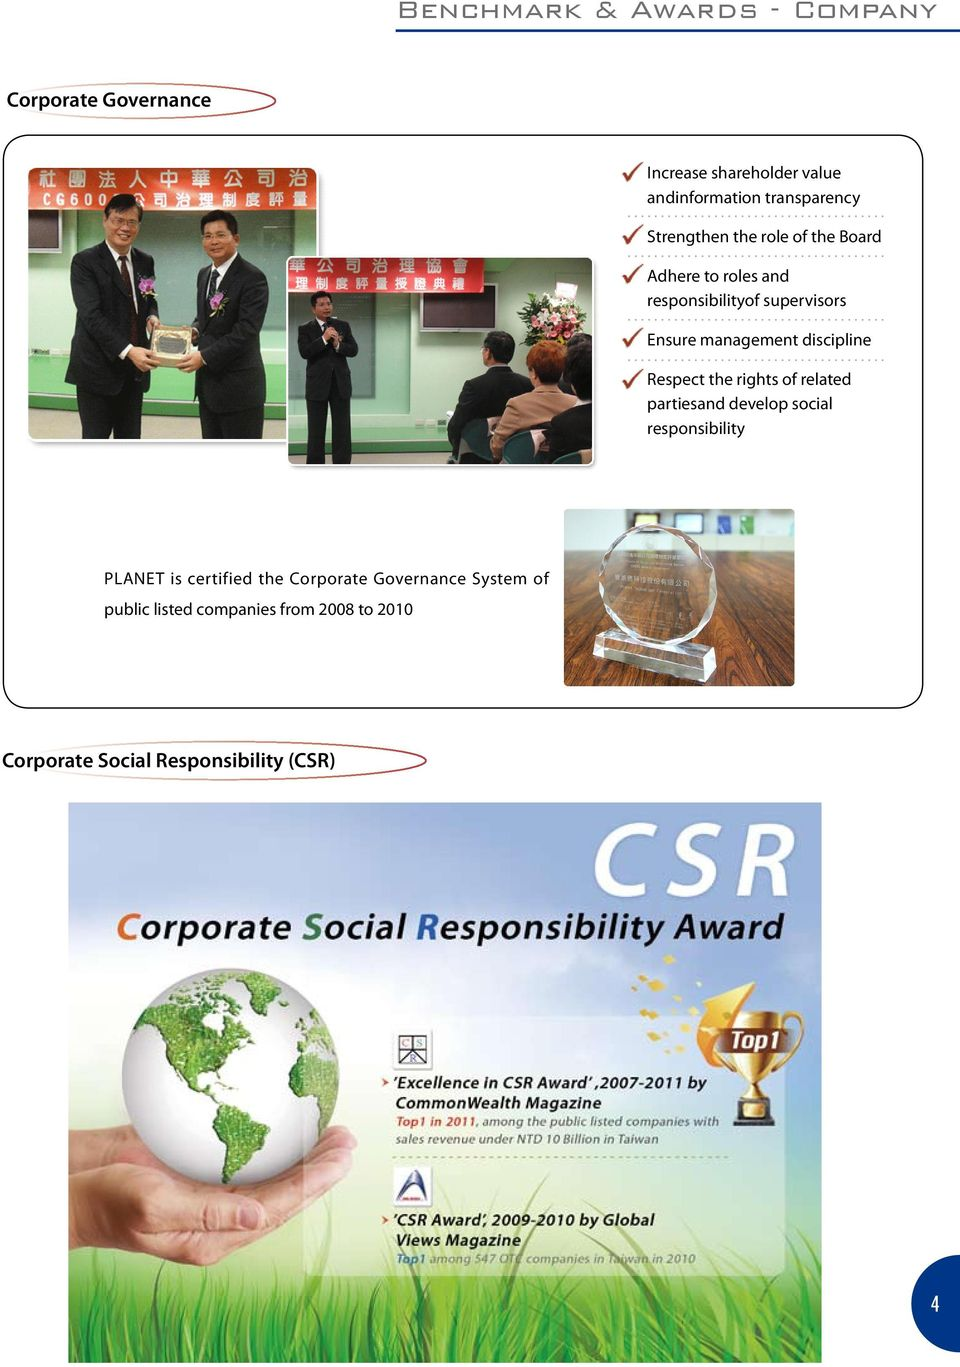 discipline Respect the rights of related partiesand develop social responsibility PLANET is certified the